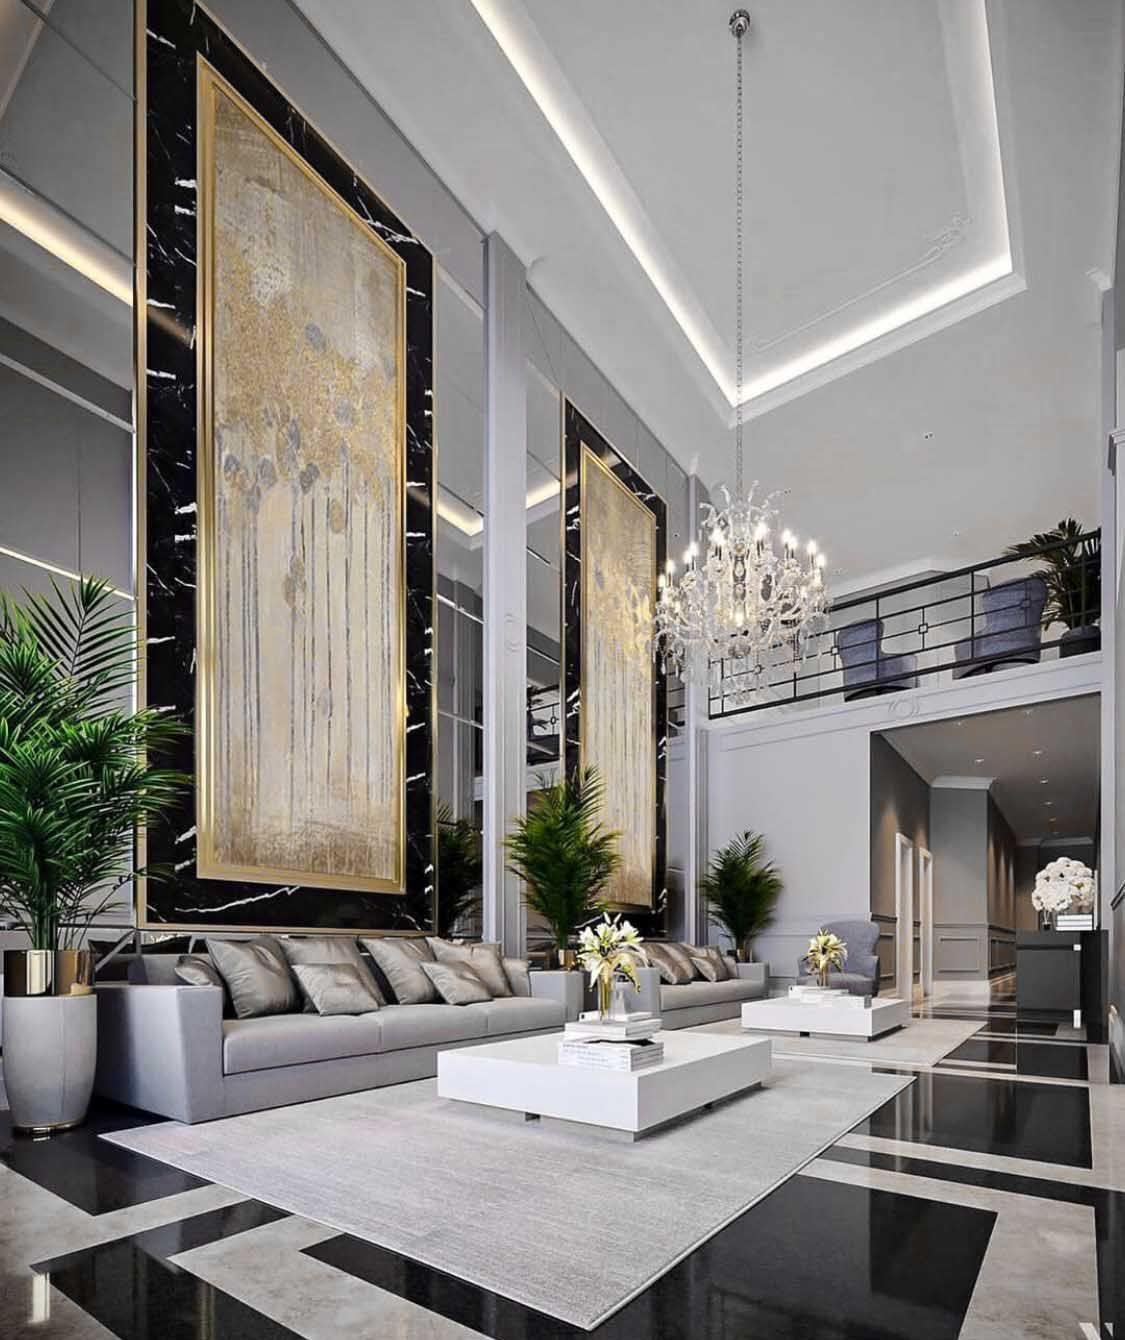 Majestic Luxury Modern Style Living Room Decor With Luxury Sofa